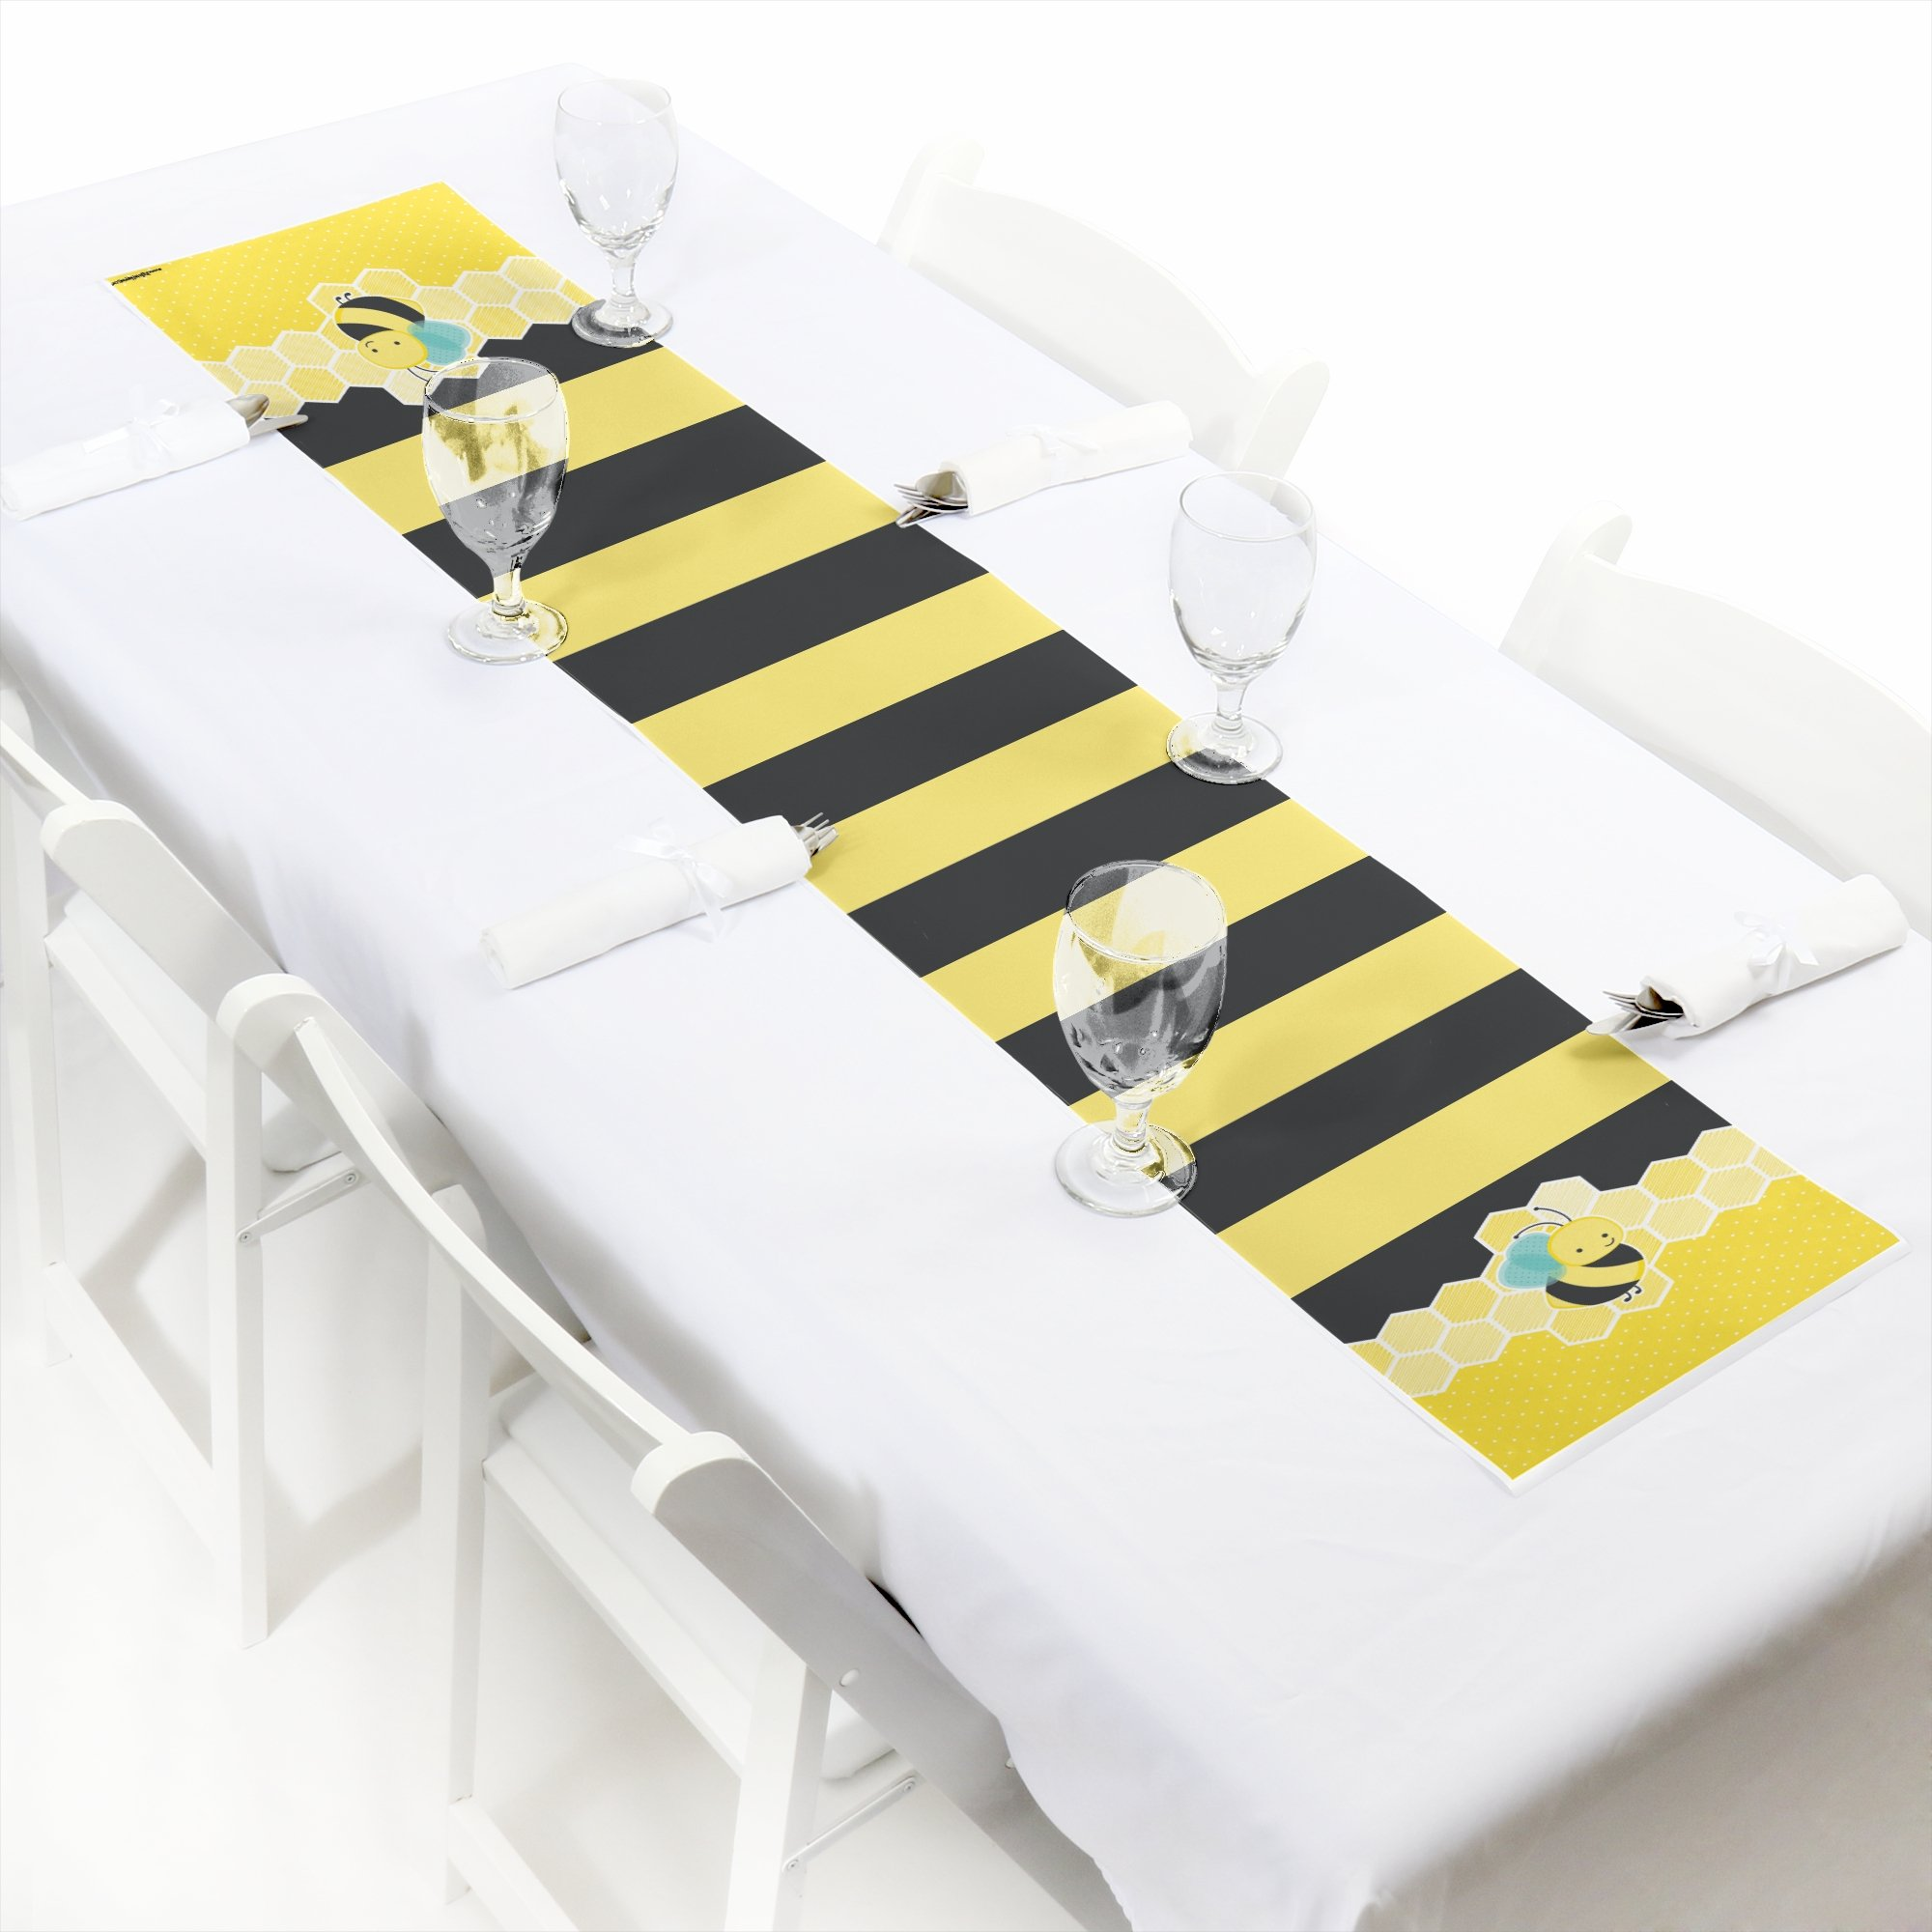 Big Dot of Happiness Honey Bee - Petite Baby Shower or Birthday Party Paper Table Runner - 12 x 60 inches by Big Dot of Happiness